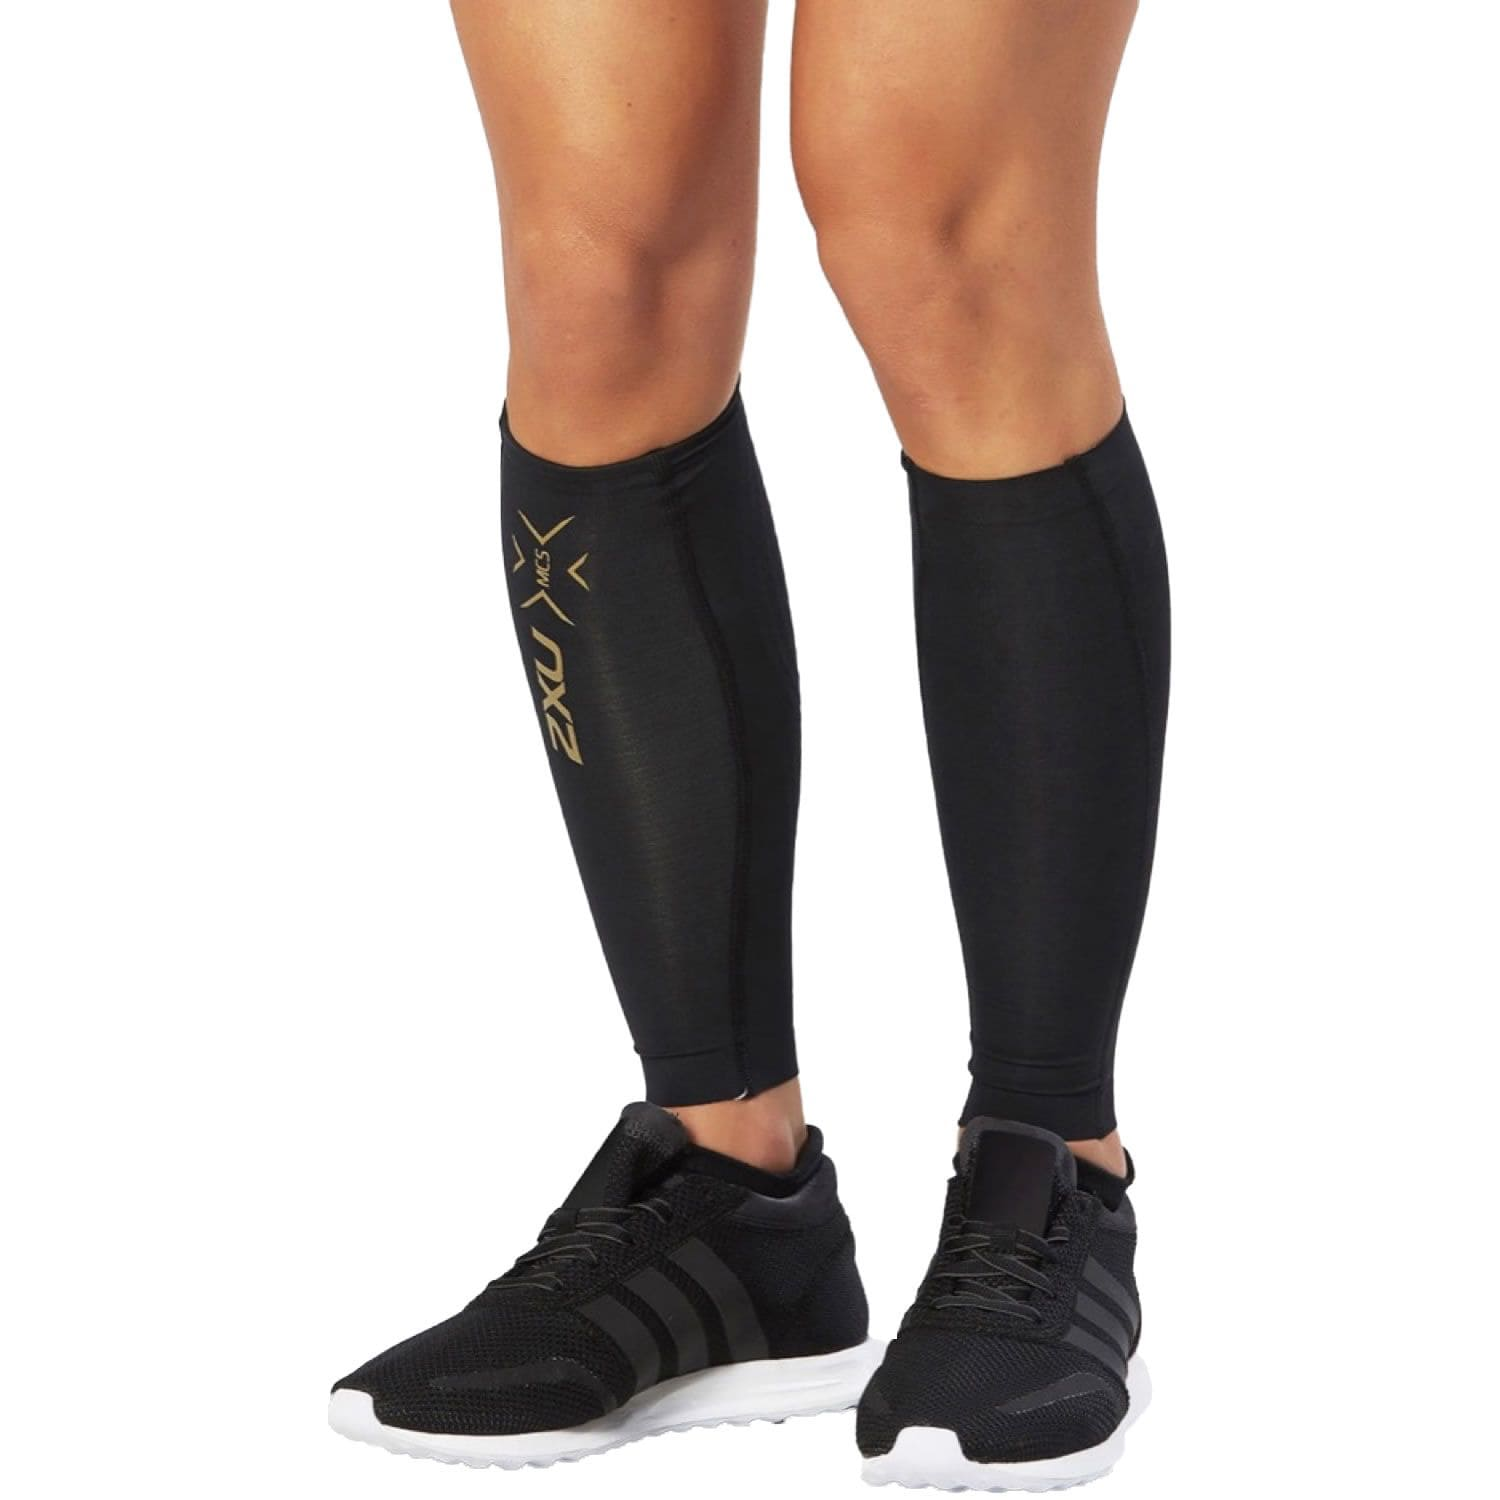 2XU Black MCS Muscle Containment Stamping Compression Shorts SIZE XS